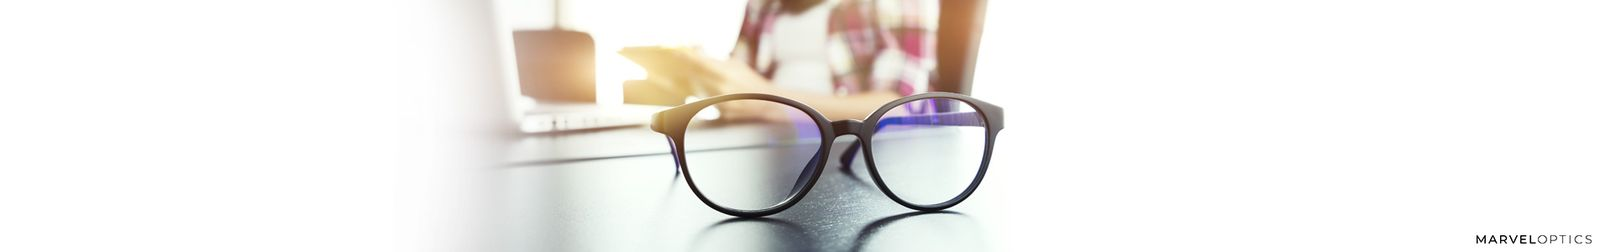 Prescription Eyeglasses Header